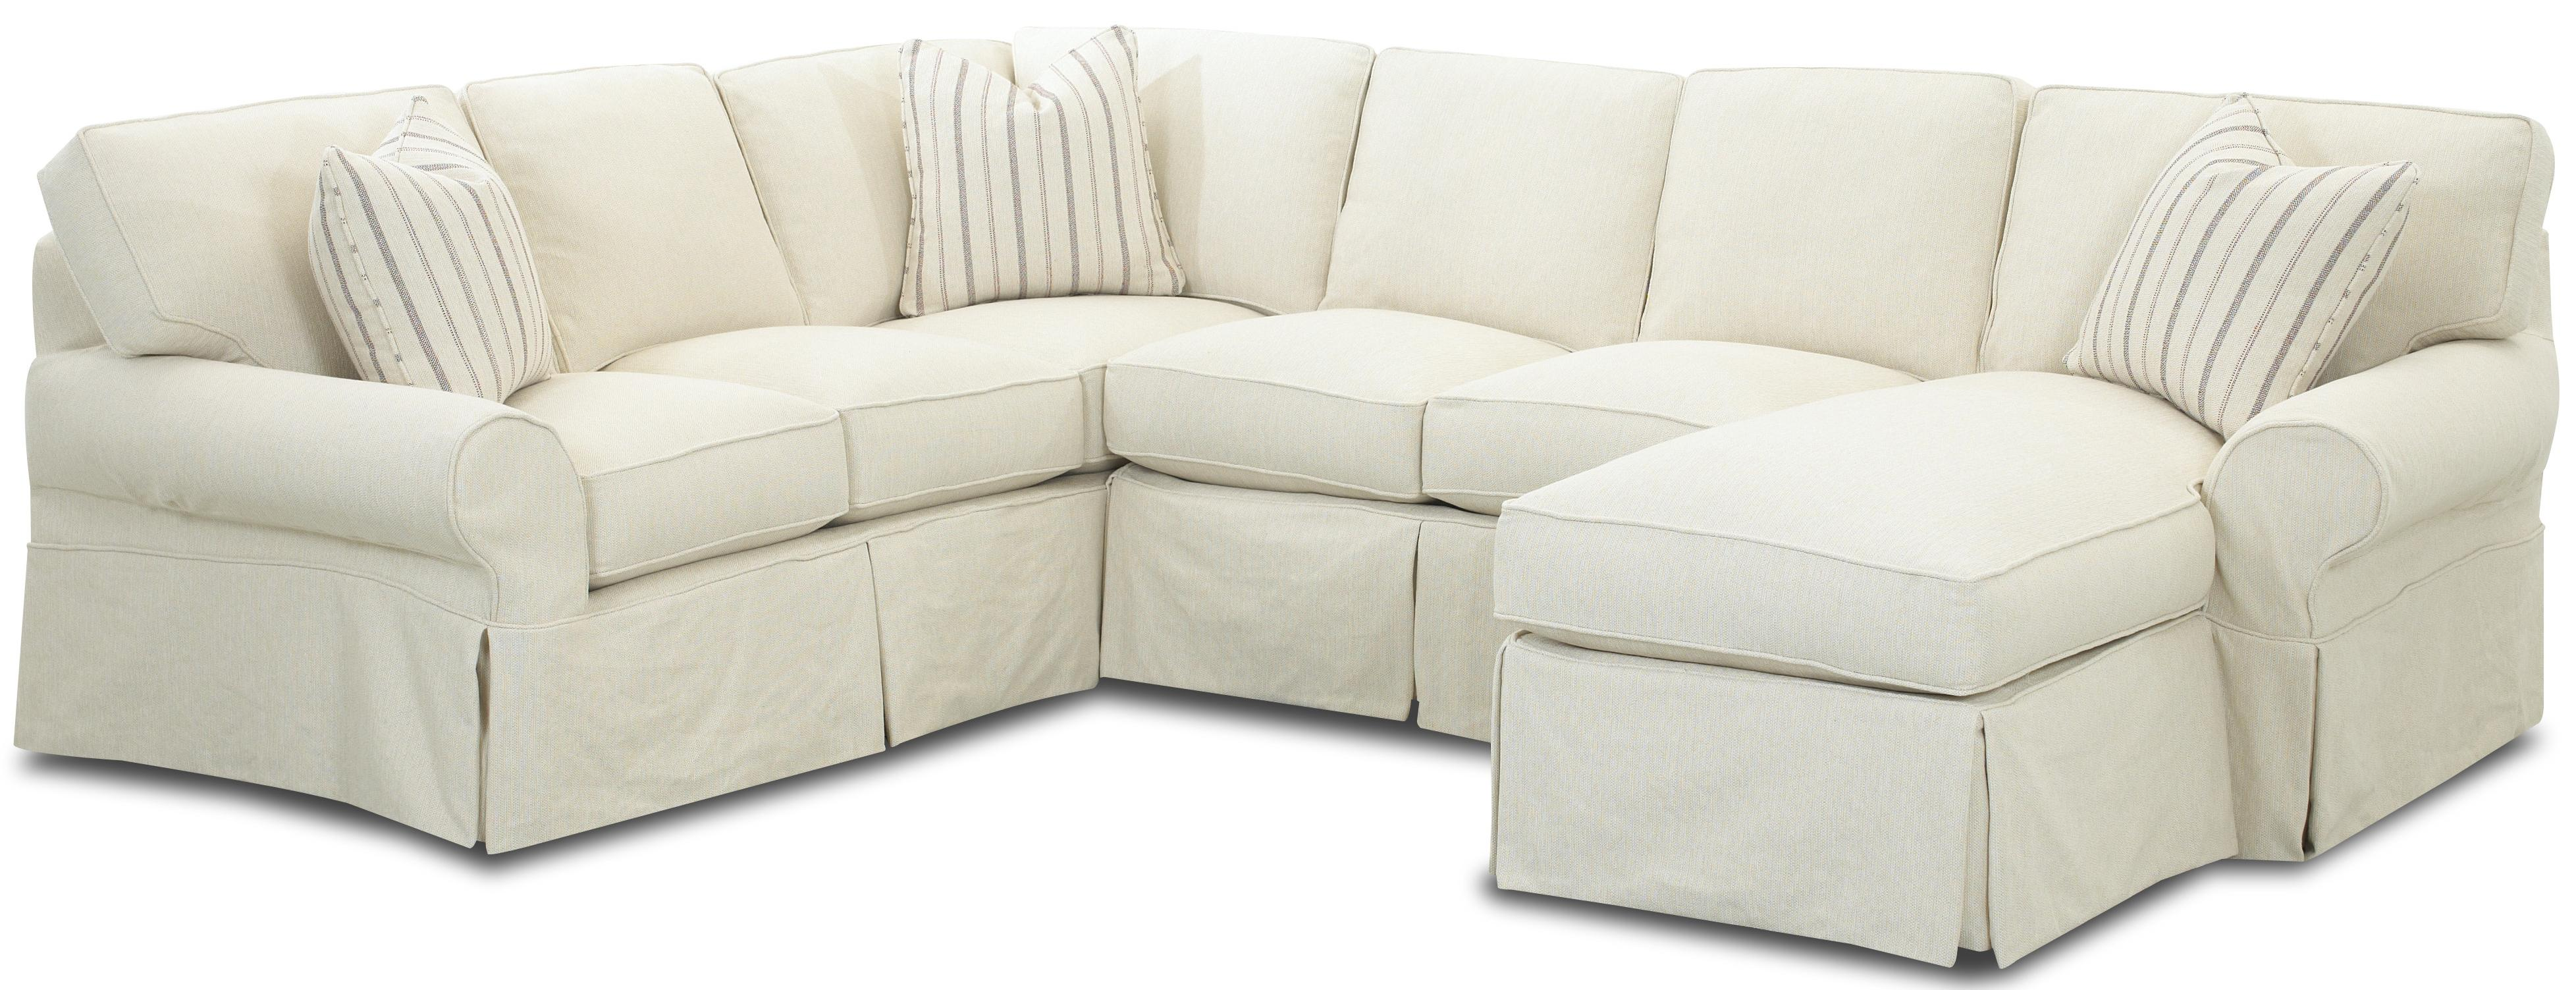 Slipcovered Sectional Sofa With Right Chaise By Klaussner Wolf - Sectonal sofa